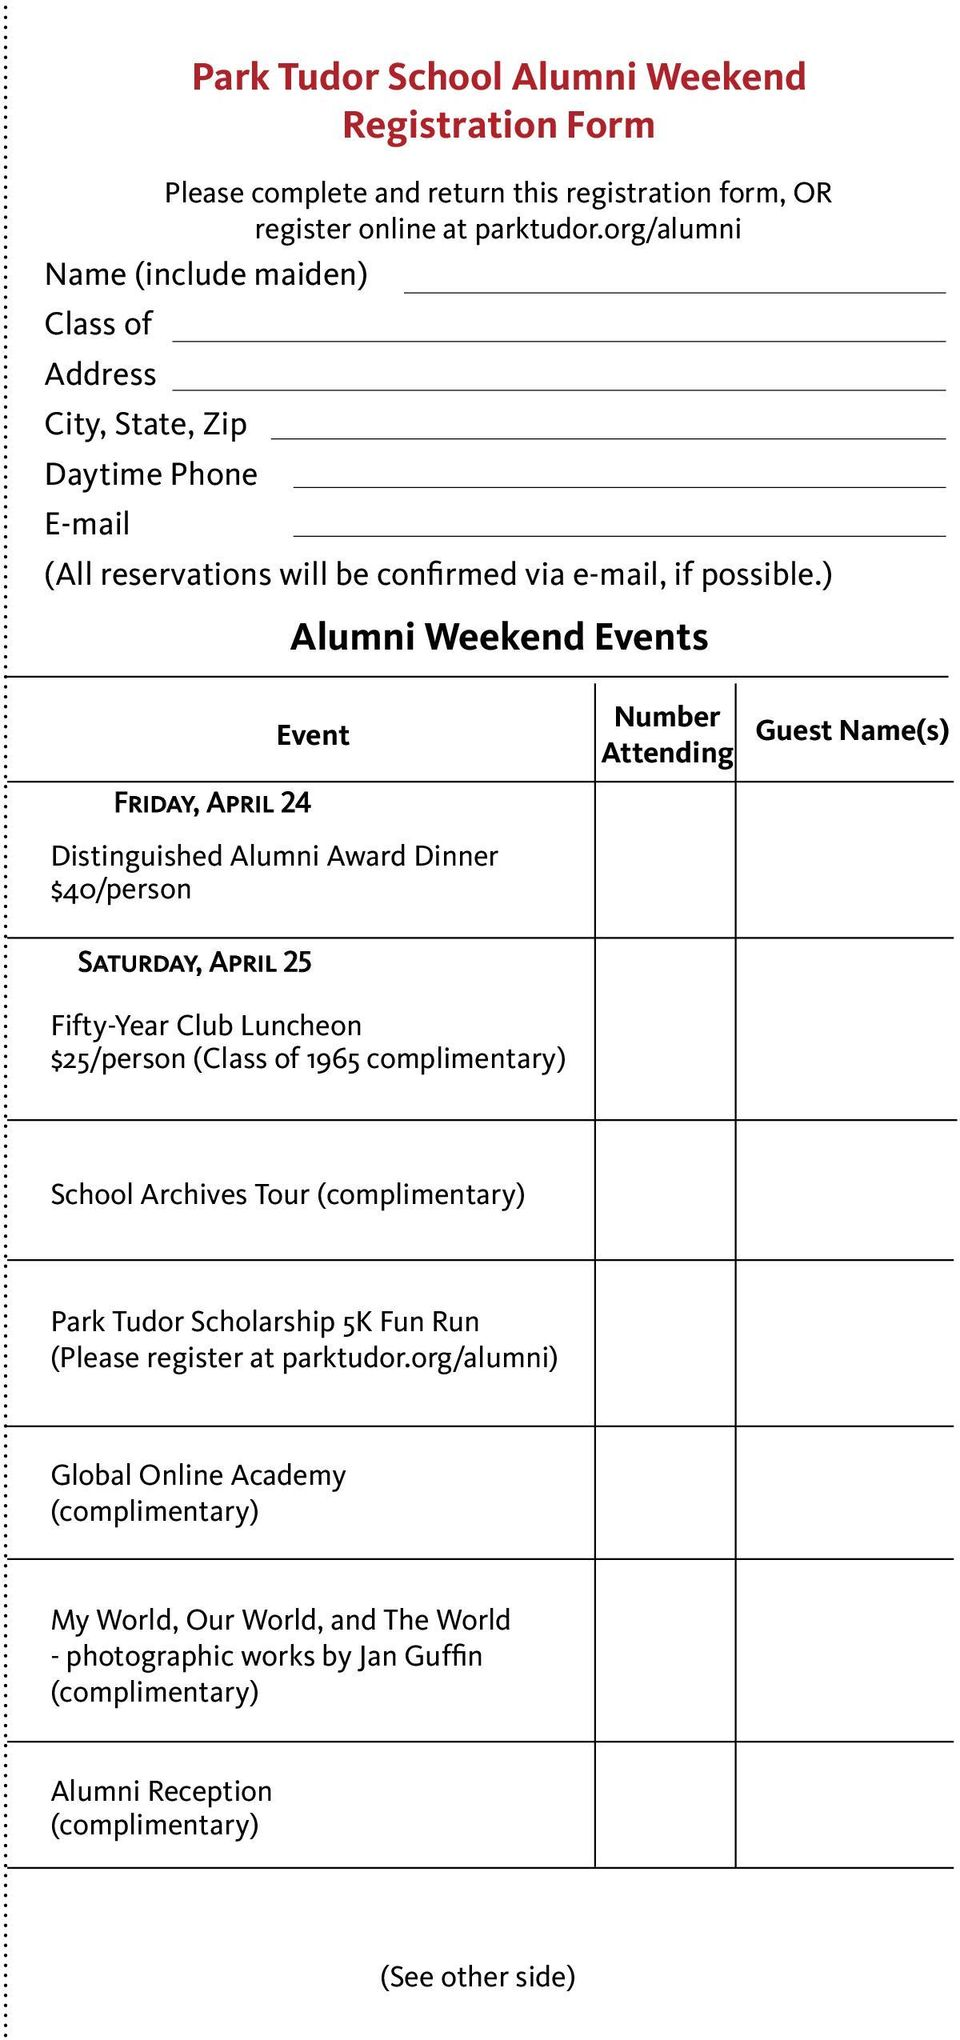 ) Alumni Weekend Events Event Number Attending Guest Name(s) Friday, April 24 Distinguished Alumni Award Dinner $40/person Saturday, April 25 Fifty-Year Club Luncheon $25/person (Class of 1965